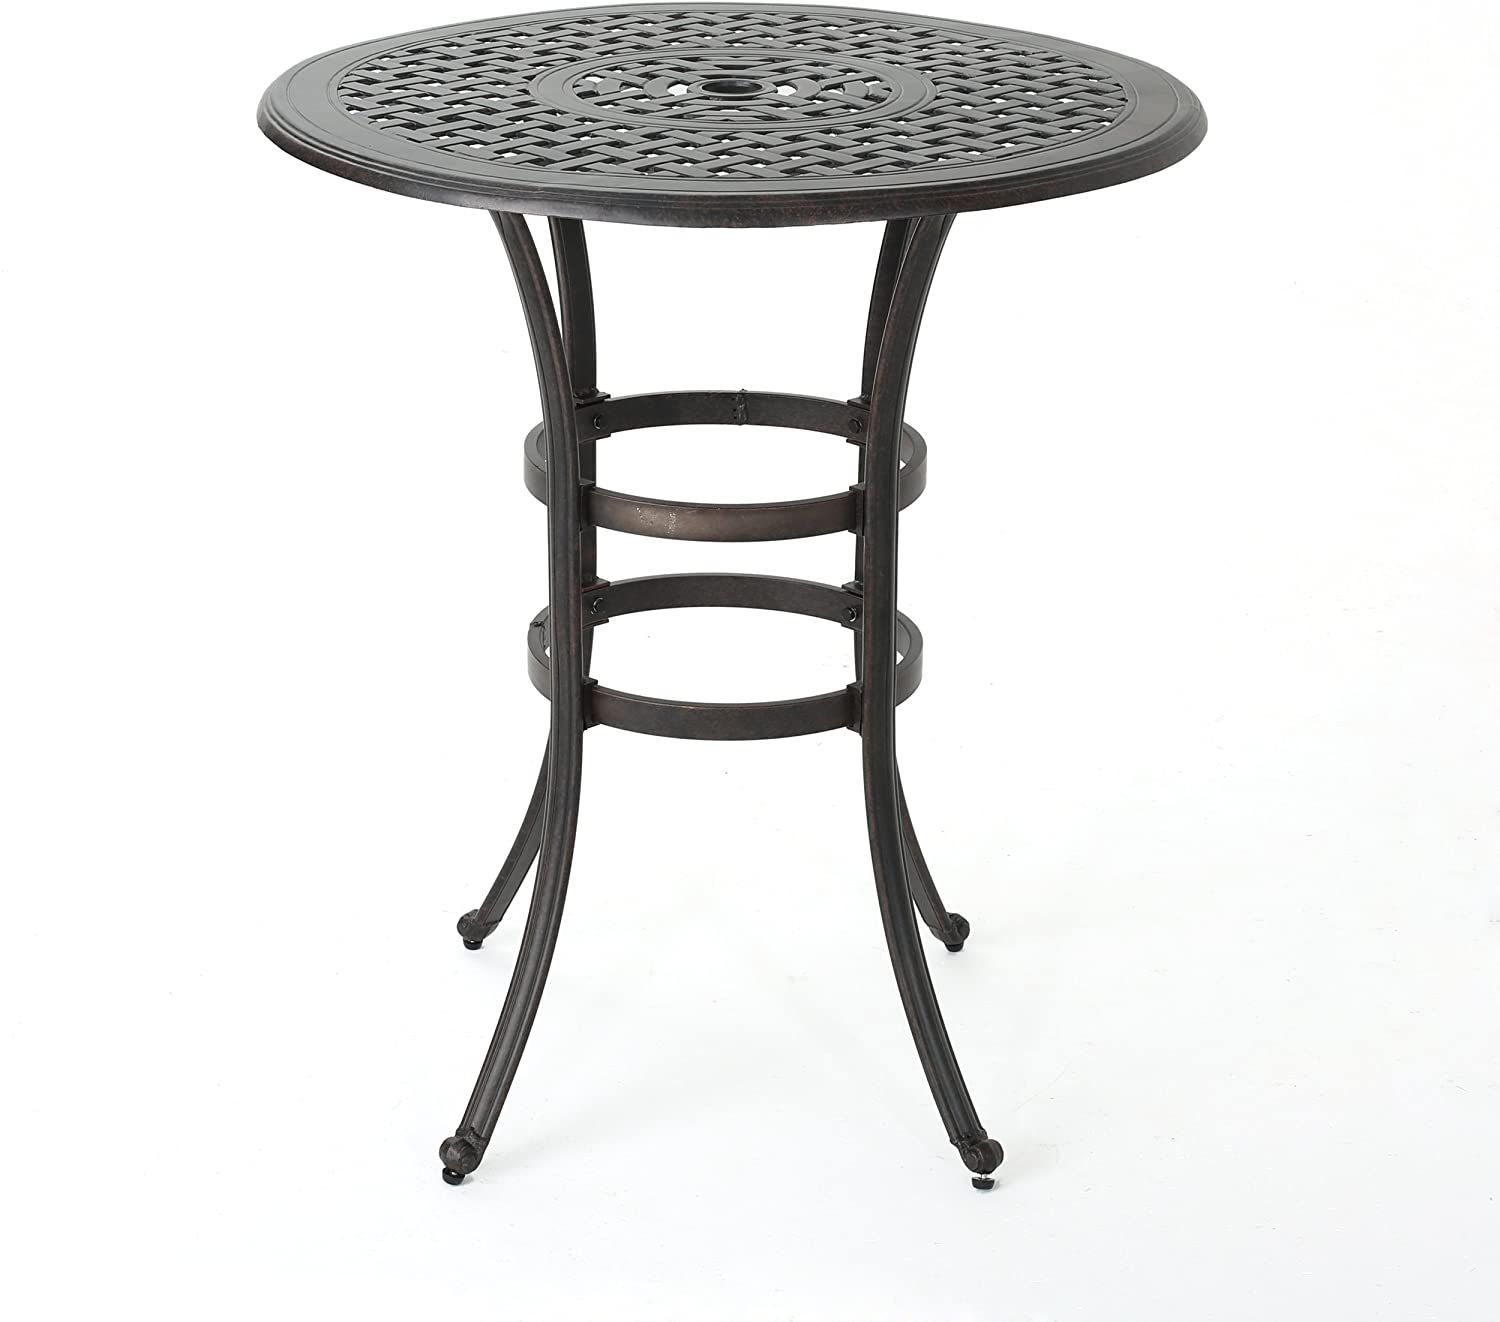 Christopher Knight Home Alfresco Outdoor Round Bar Table